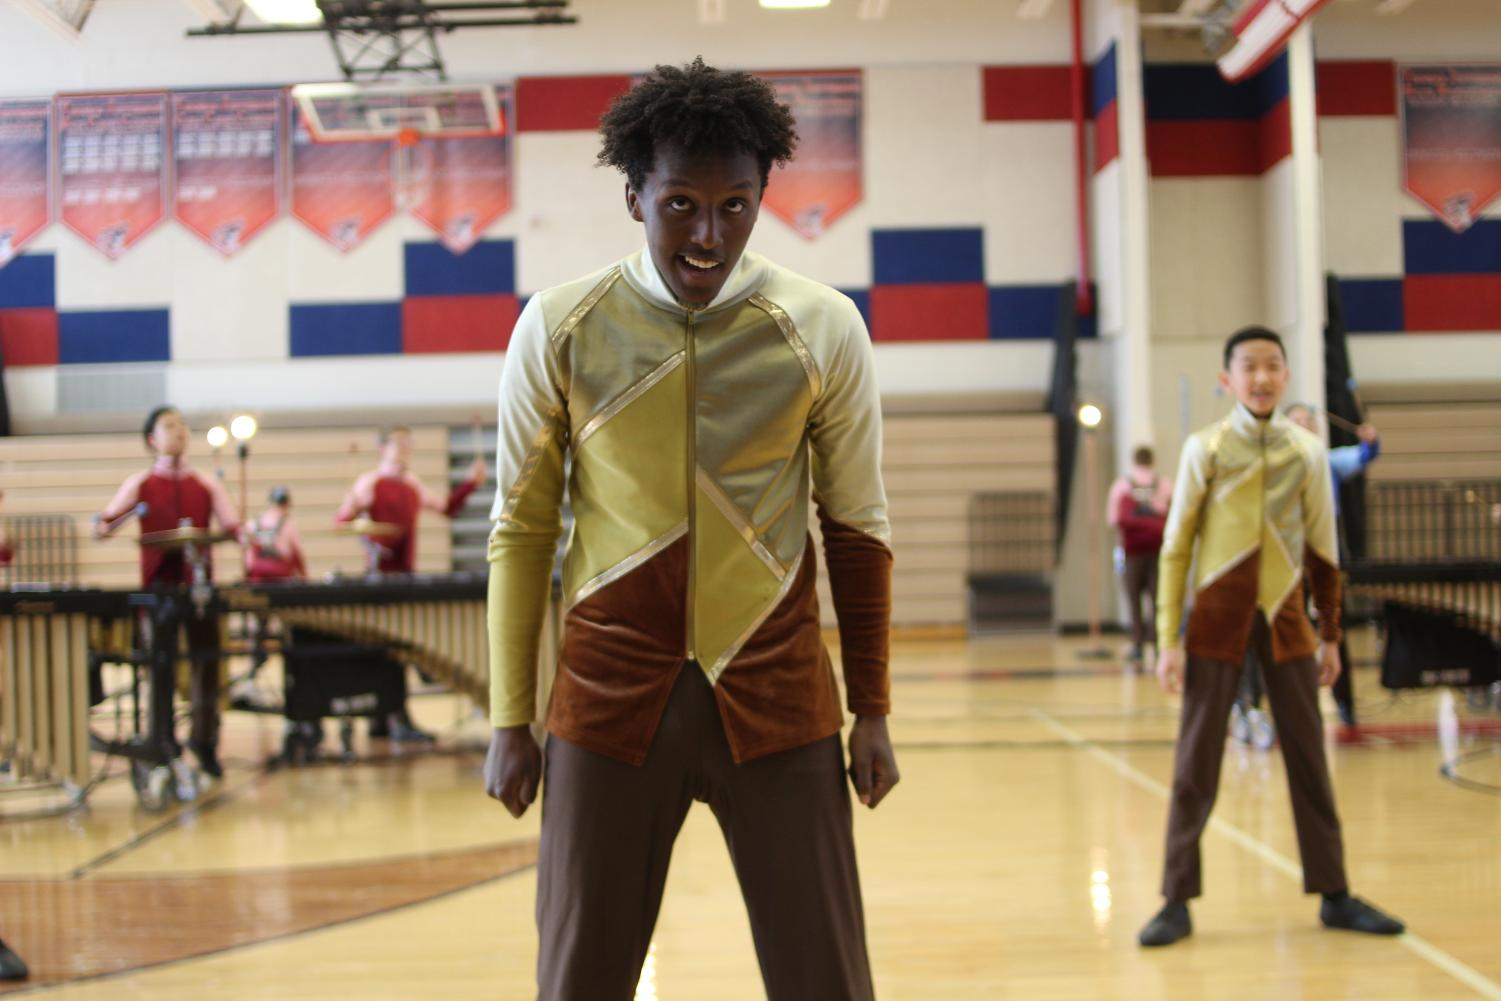 With+percussion+music+playing+in+his+background%2C+freshman+Nathanael+Tewodros+stands+near+the+audience%2C+shoulders+hunched.+Although+the+main+focus+of+the+performance+is+the+music%2C+the+performance+involves+dance+as+well.+%E2%80%9CWhen+we+don%E2%80%99t+use+our+instruments%2C+we+are+typically+doing+choreographed+dances+that+are+made+to+match+musical+phrases+or+little+queues%2C%E2%80%9D+Tewodros+said.%0A